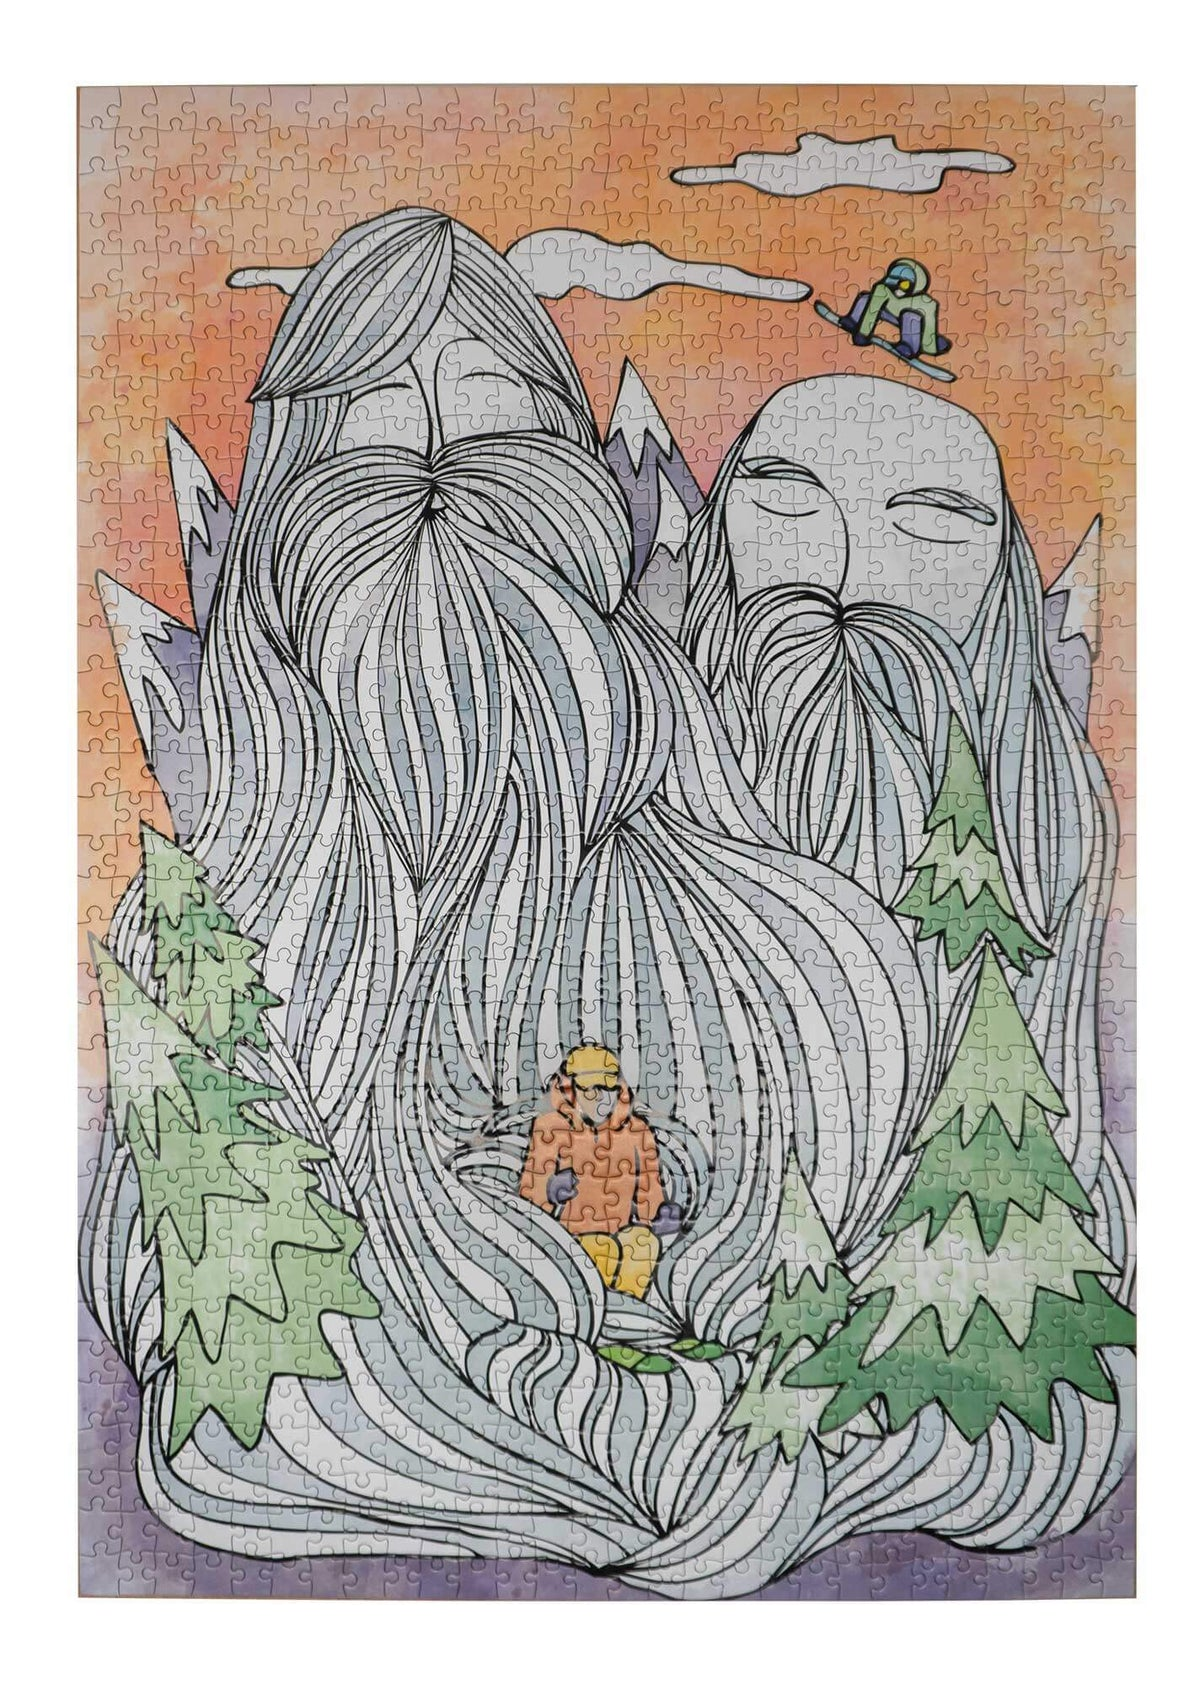 Mountain Men Jigsaw Puzzle | 1000 Piece Jigsaw Puzzle